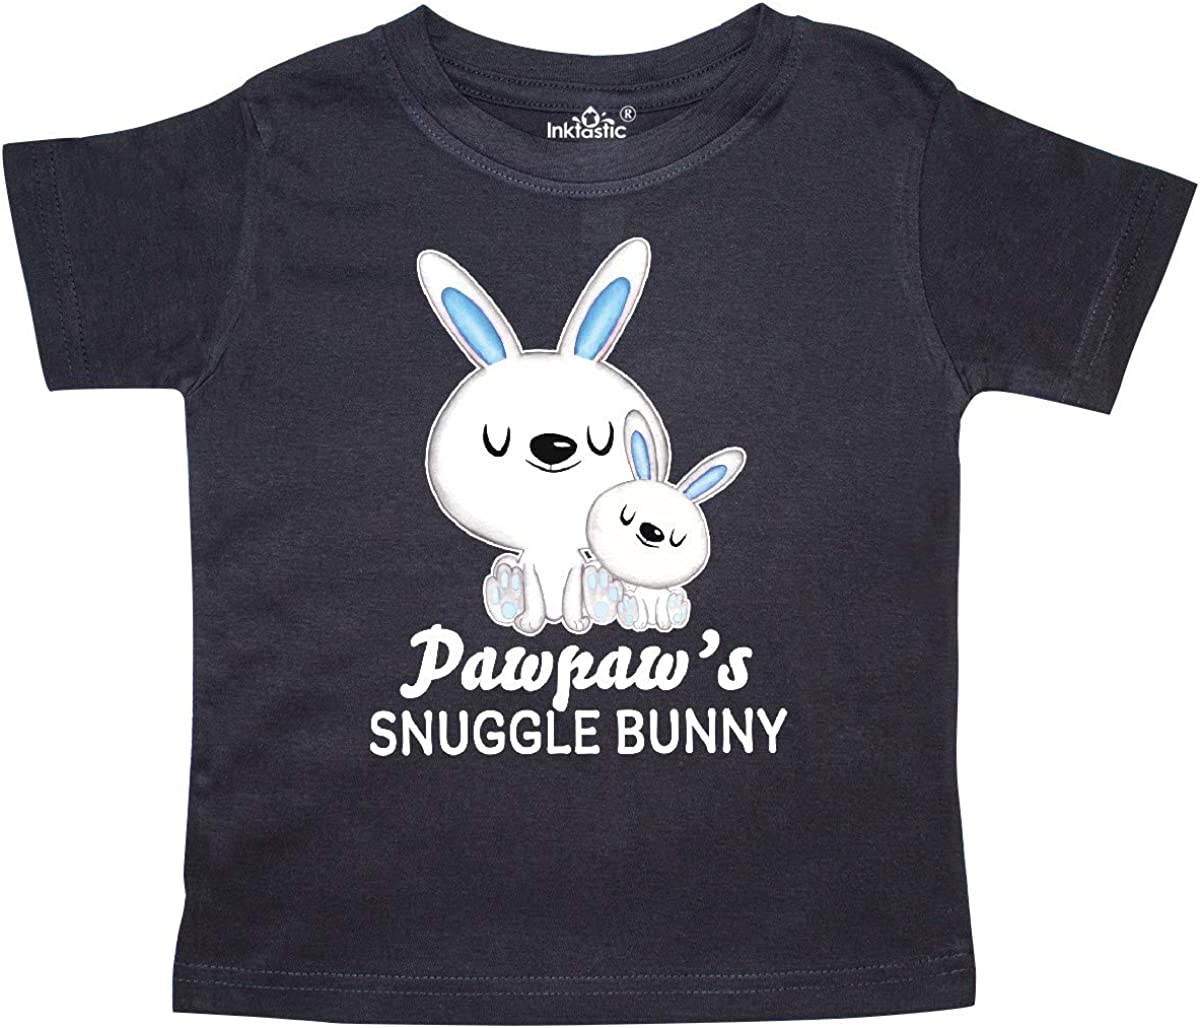 inktastic Pawpaws Snuggle Bunny Easter Toddler T-Shirt